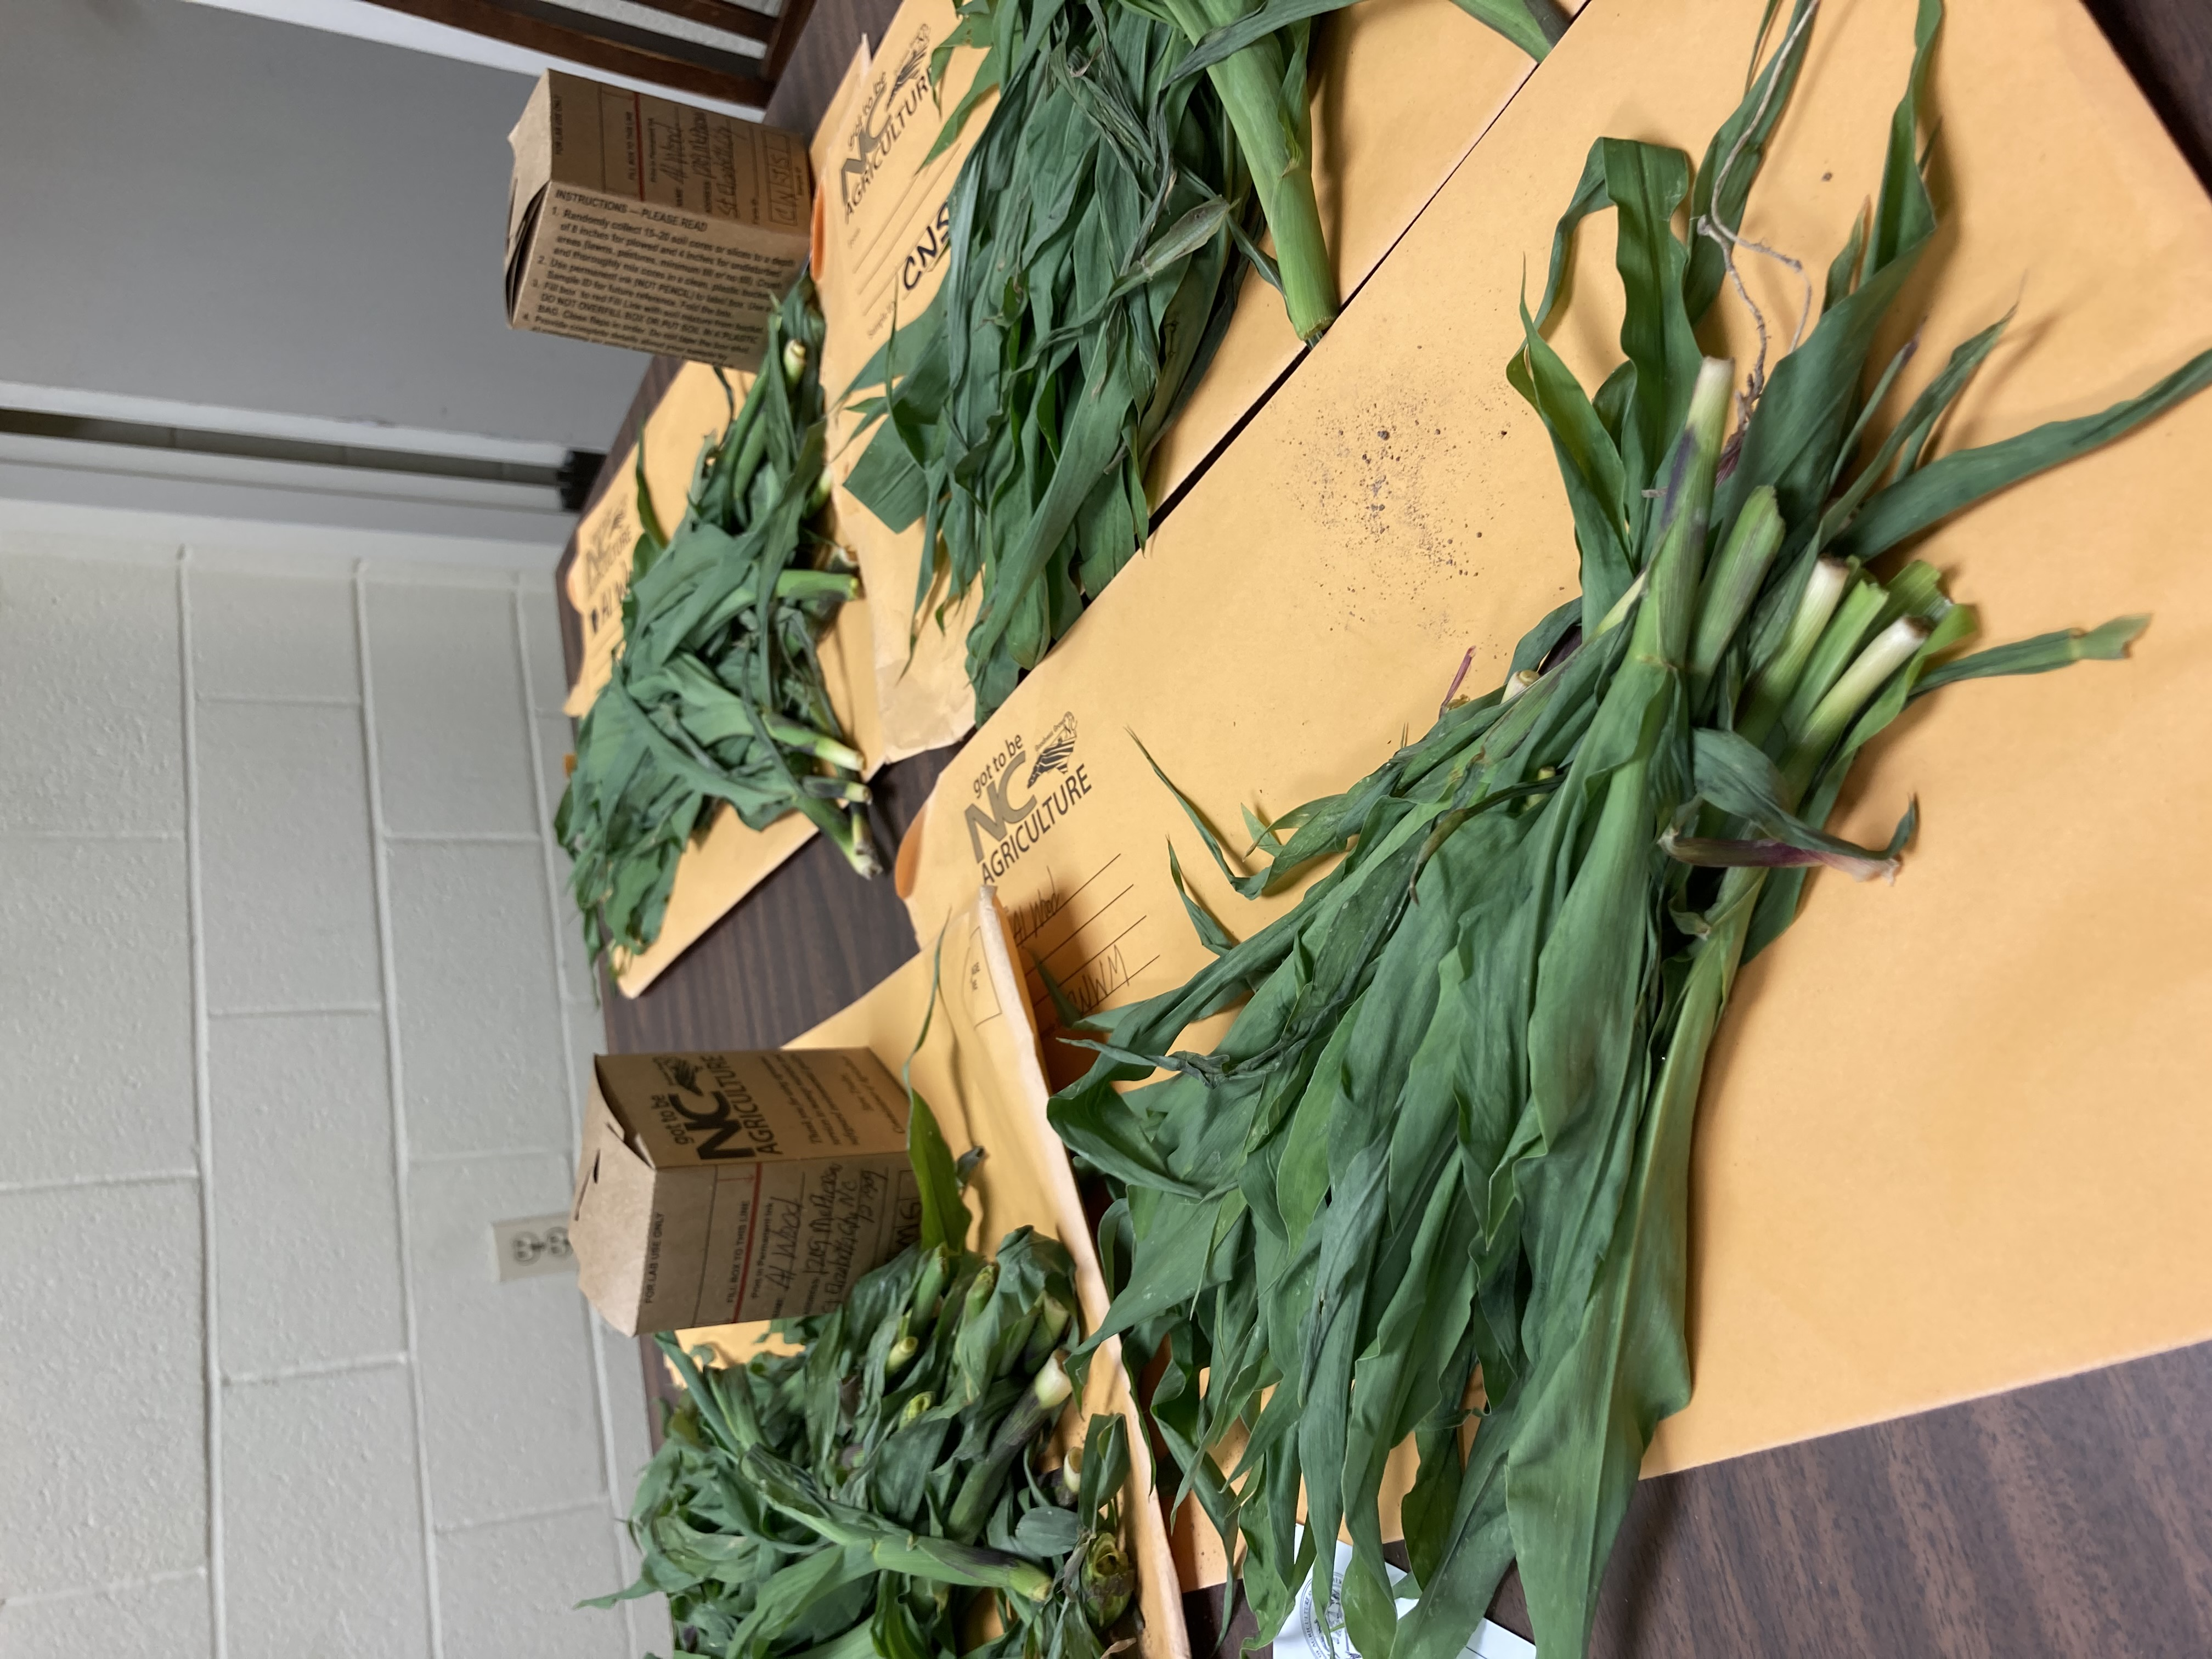 Plant tissue samples ready for submission and analysis by the North Carolina Department of Agriculture & Consumer Services Agronomic Division.